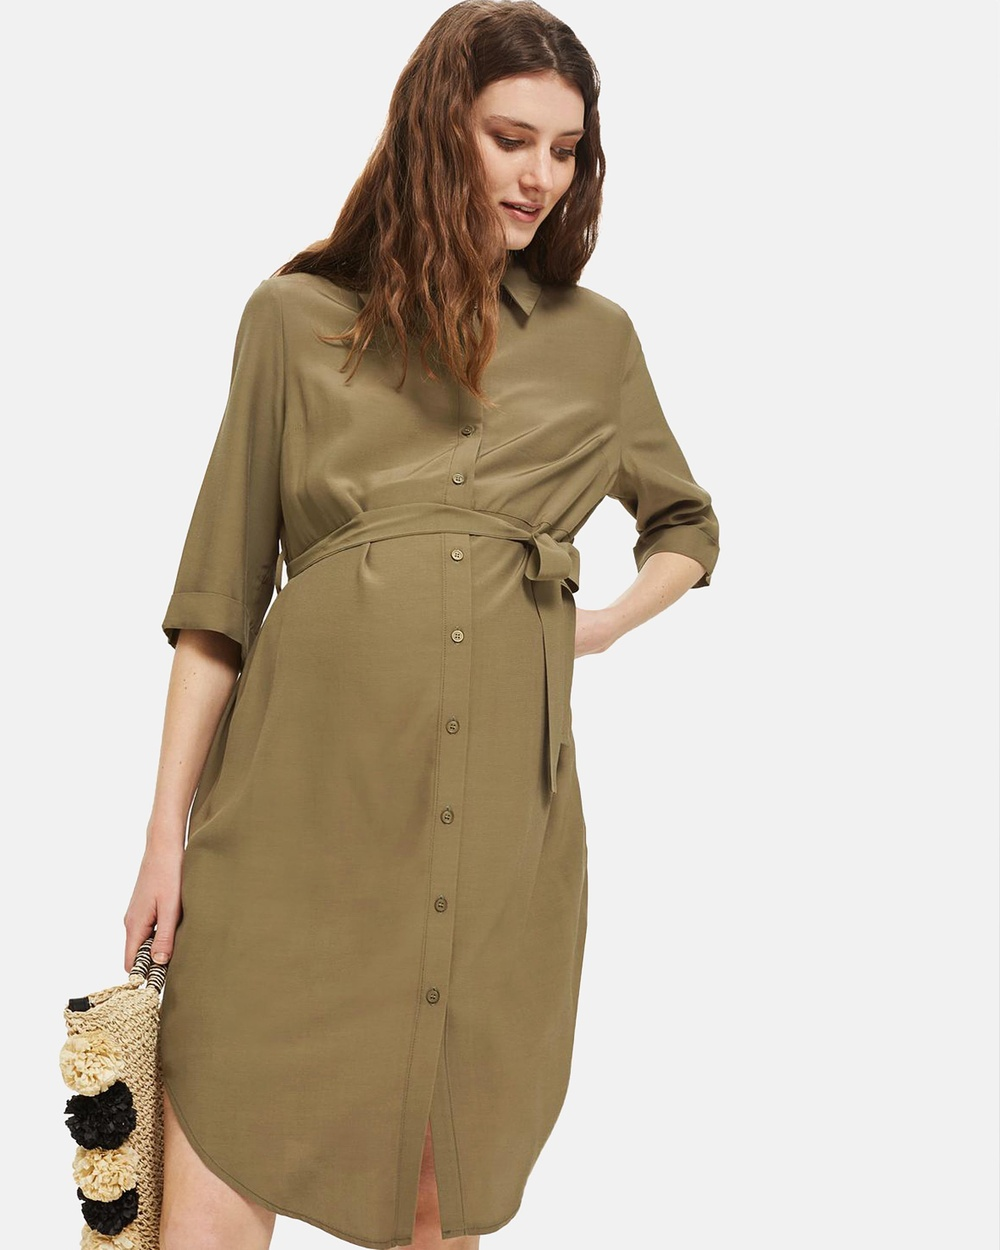 TOPSHOP Maternity Belted Utlity Shirt Dress Dresses Khaki Belted Utlity Shirt Dress